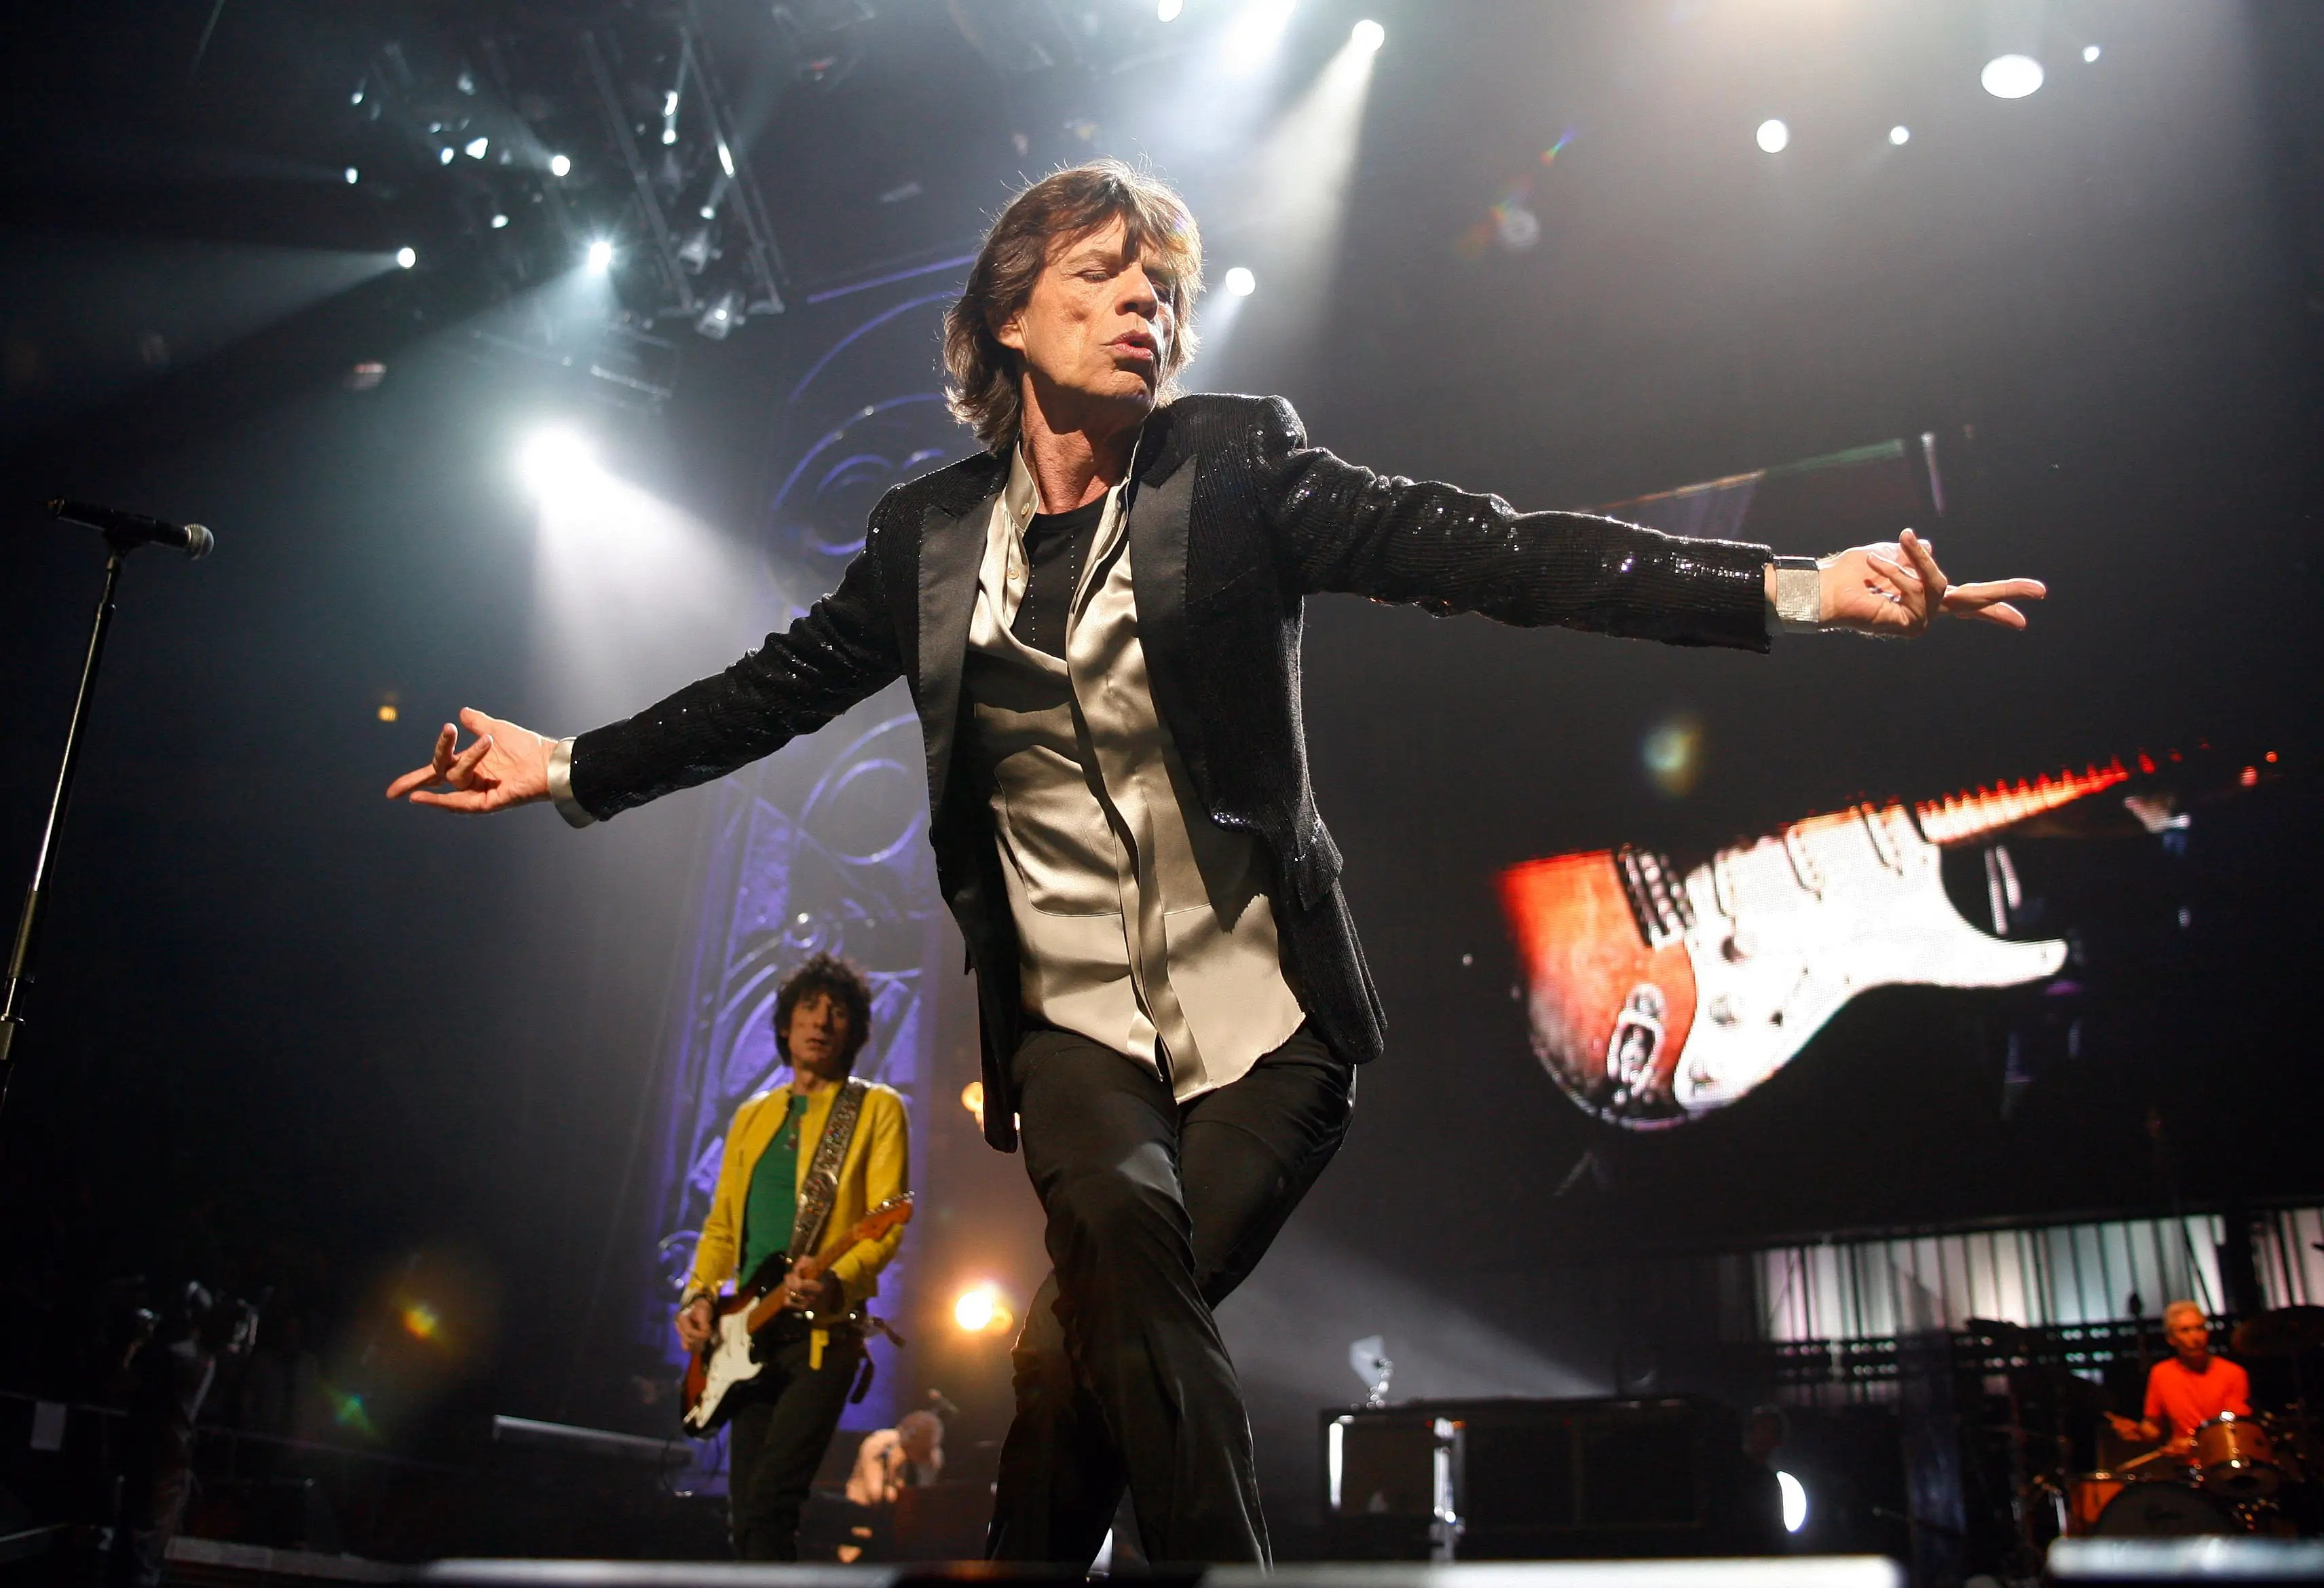 13. The Rolling Stones — 66.5 million units